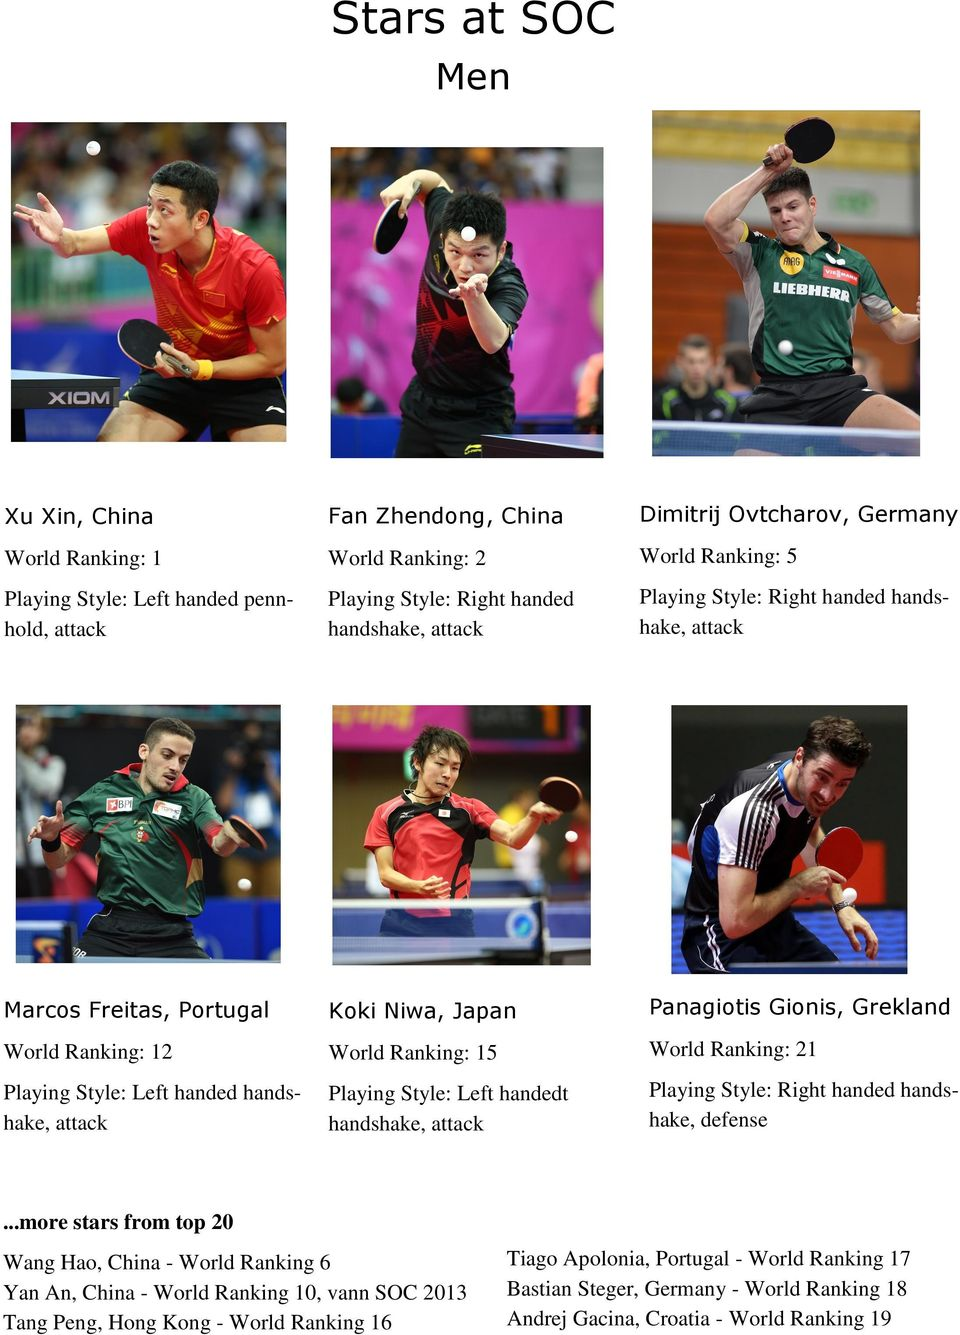 Gionis, Grekland World Ranking: 21 handshake, defense.